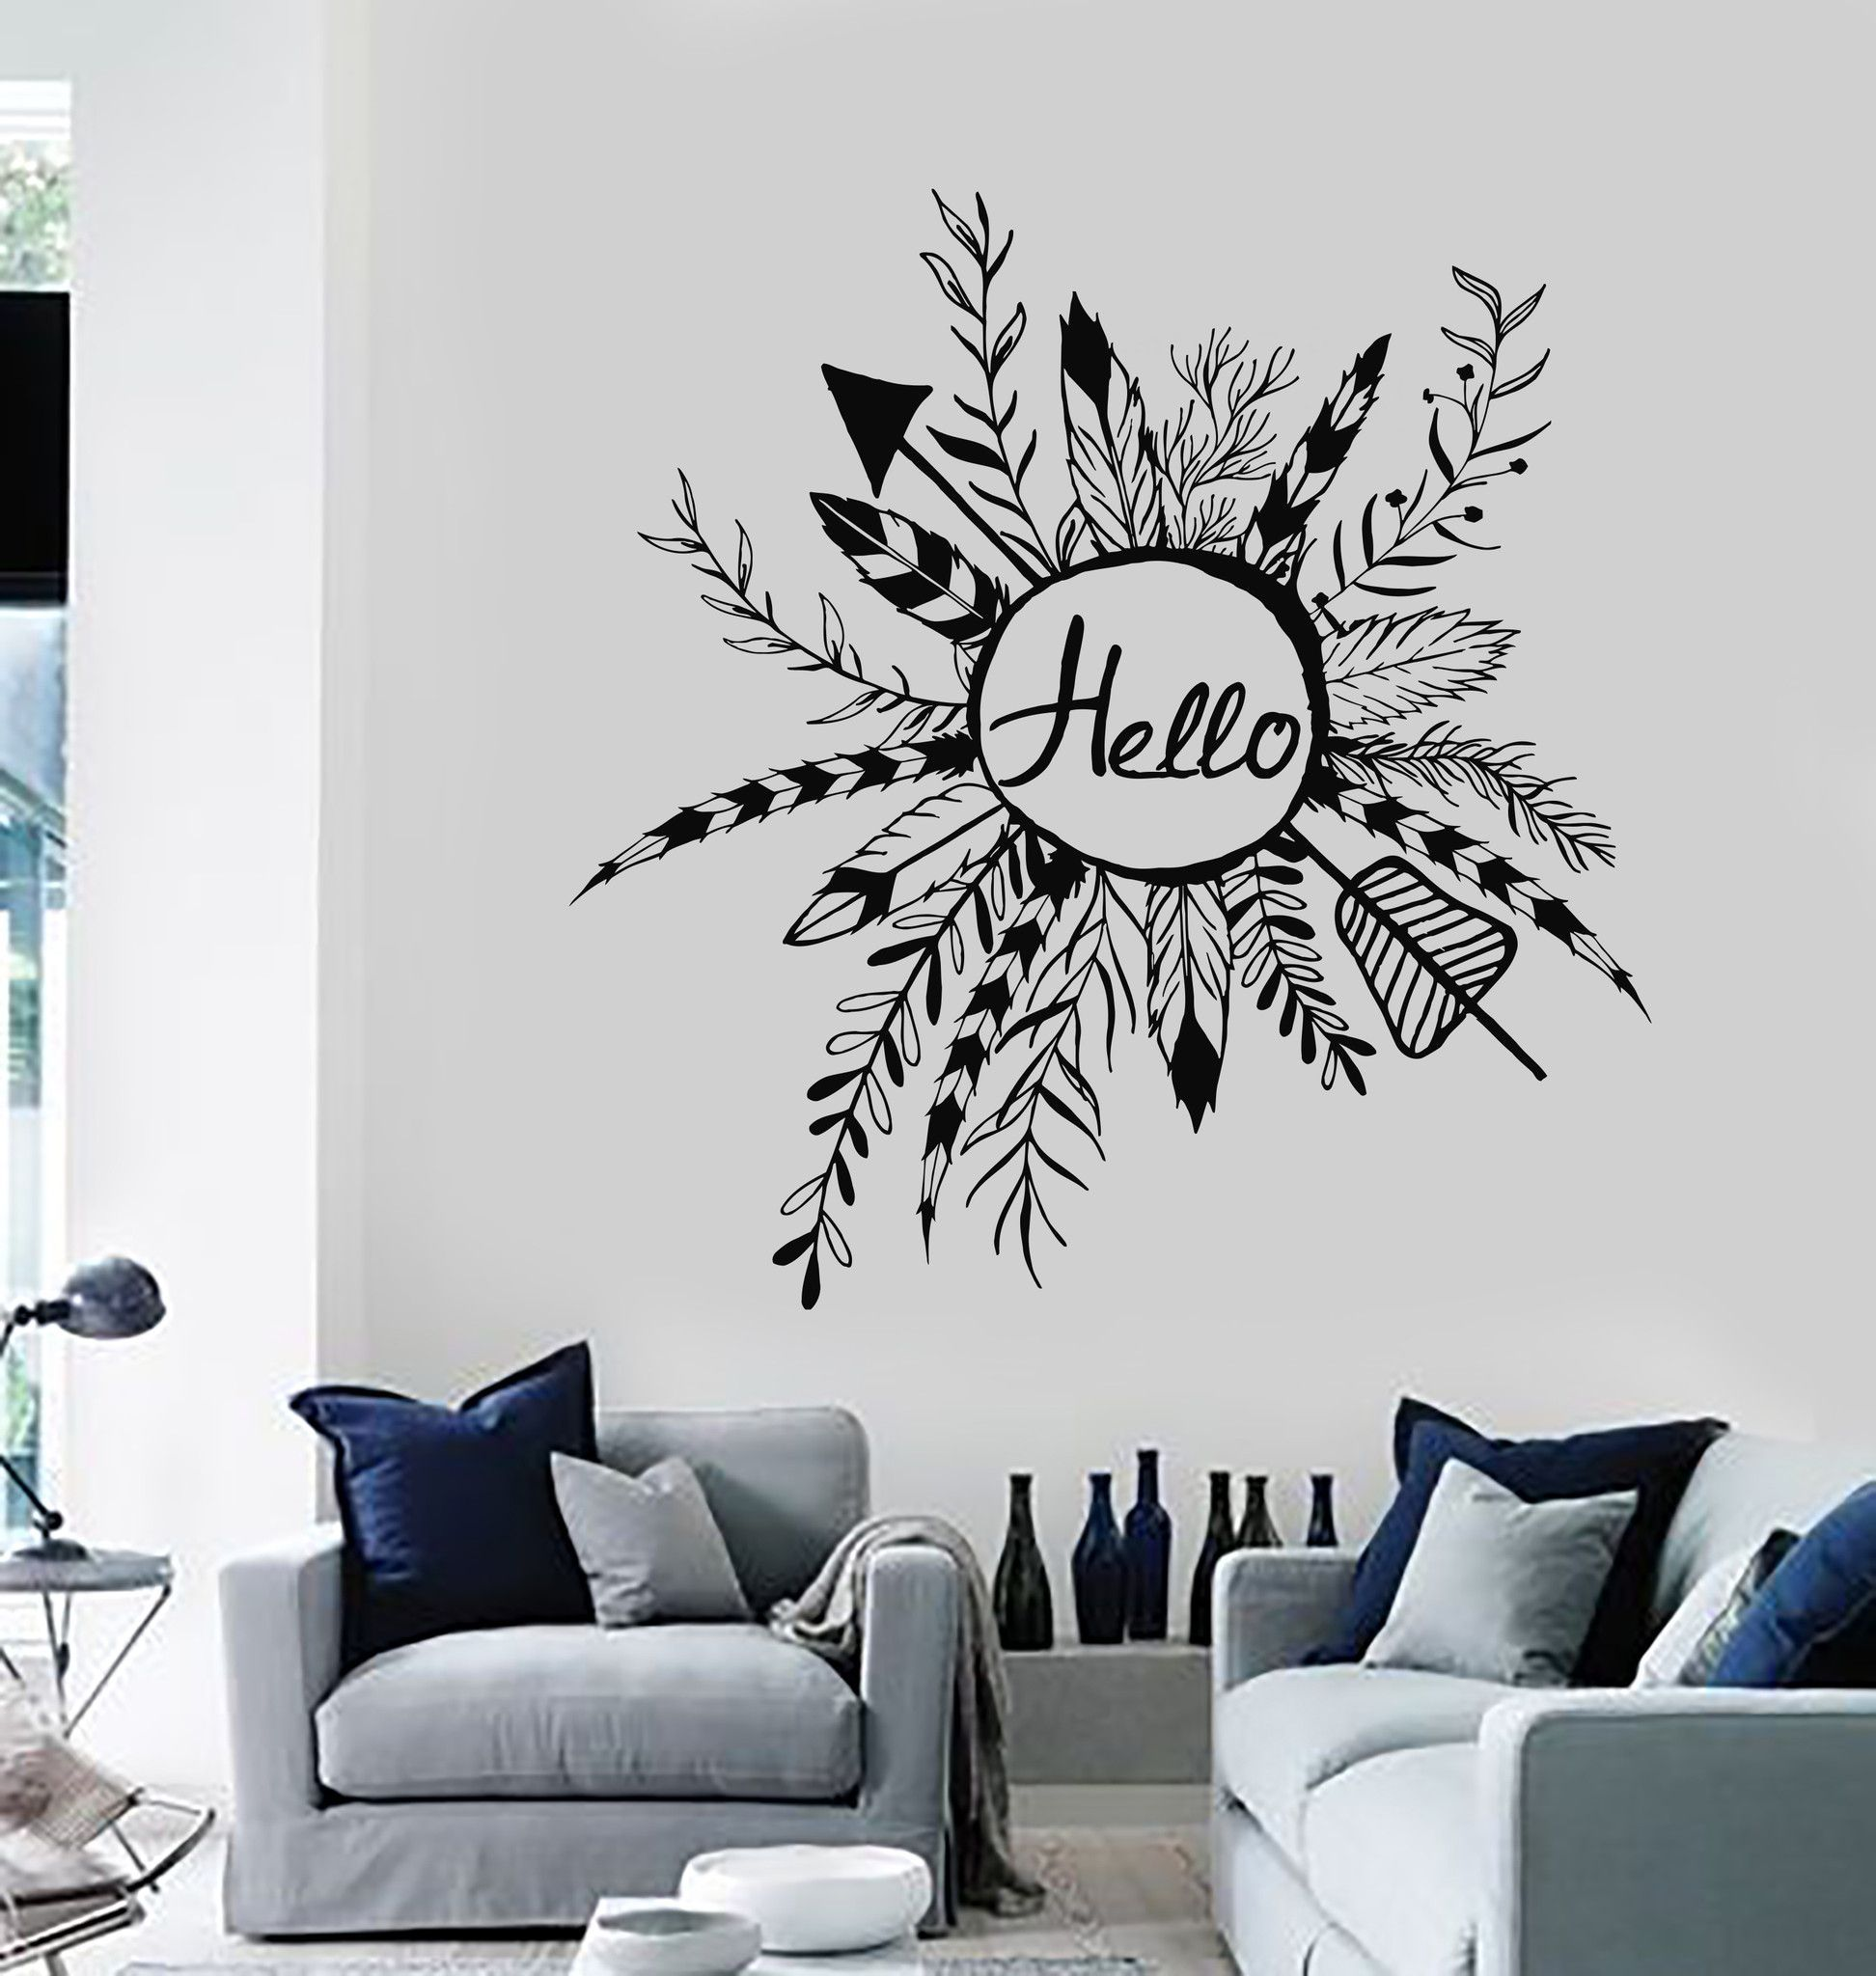 Vinyl wall decal rustic style wreath hello ethnic arrows feathers vinyl wall decal rustic style wreath hello ethnic arrows feathers stickers ig4047 amipublicfo Images